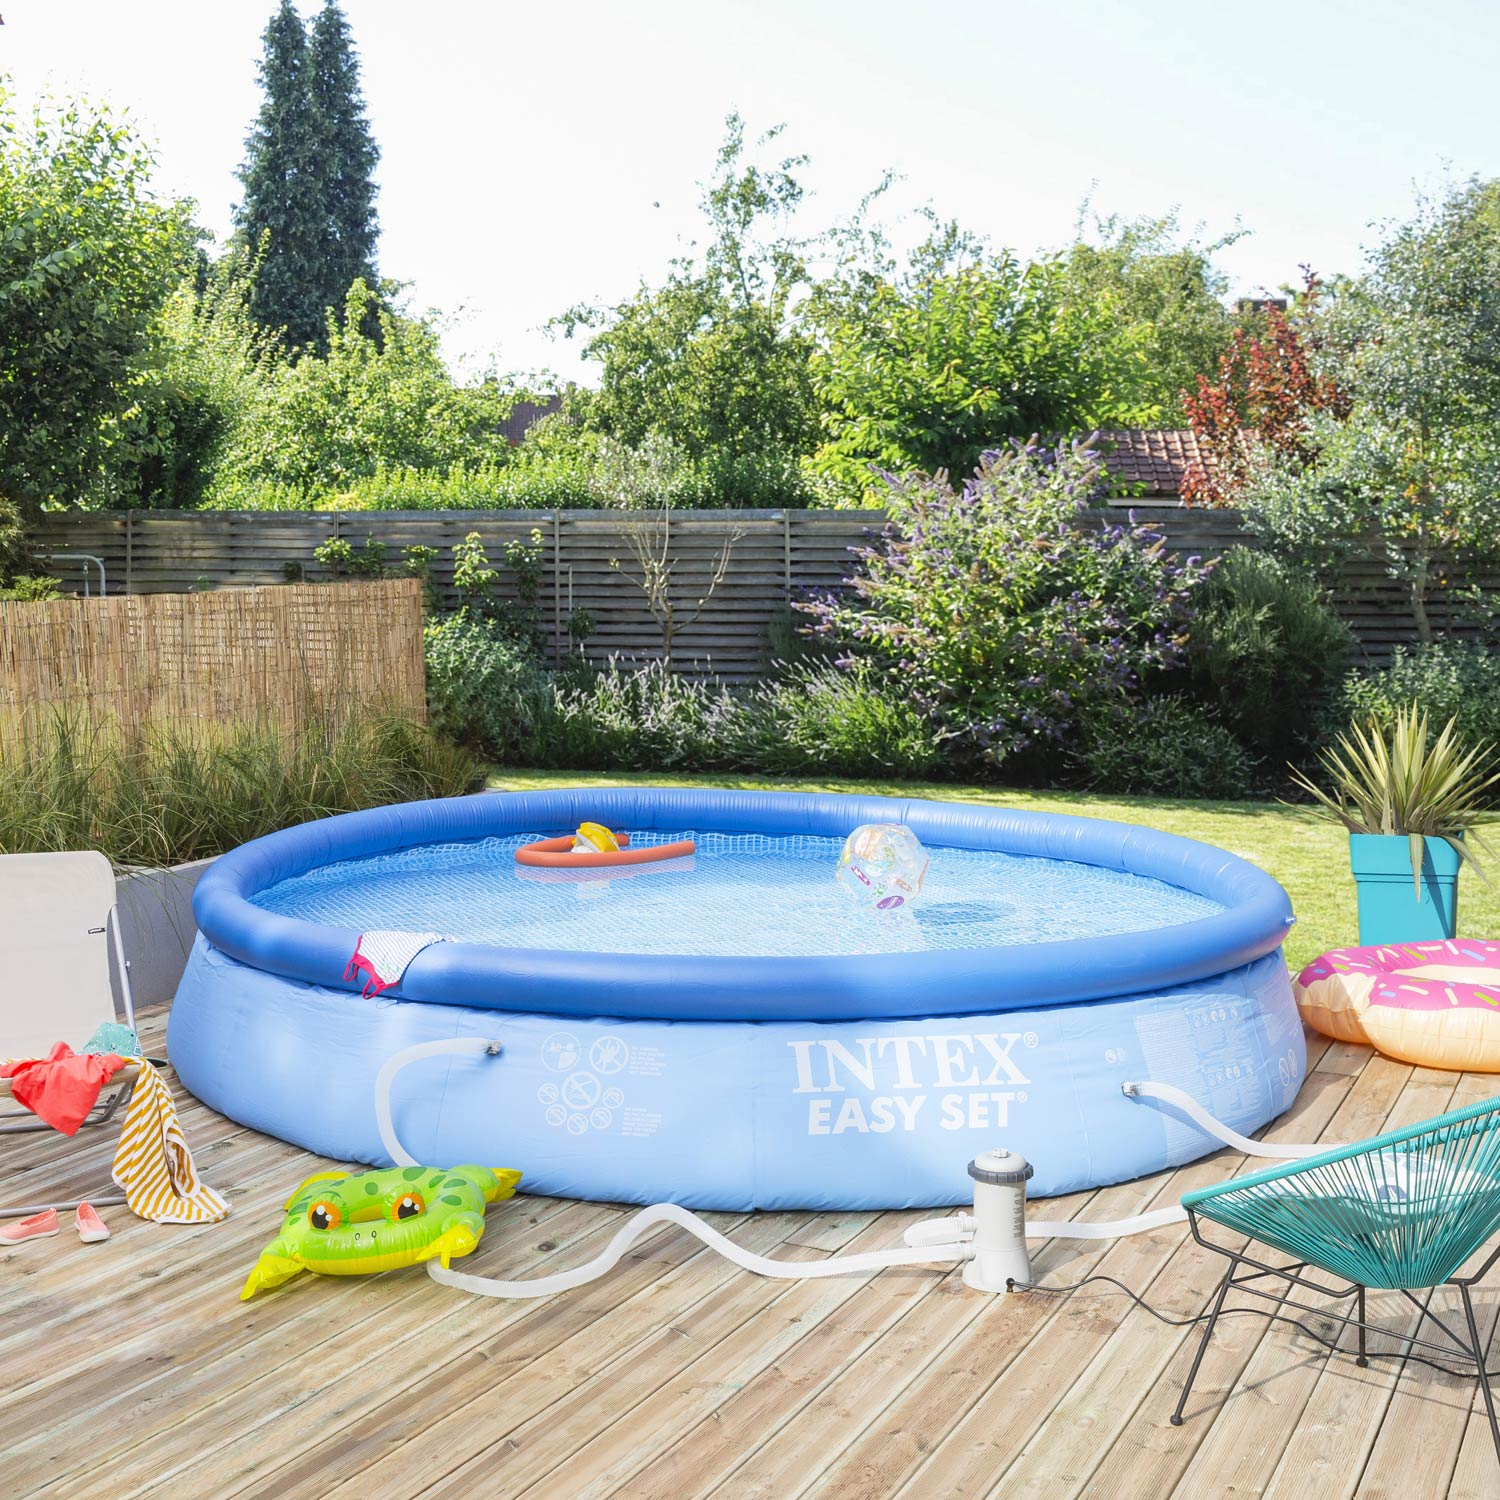 Piscine hors sol autoportante gonflable easy set intex for Piscine hors sol jardiland